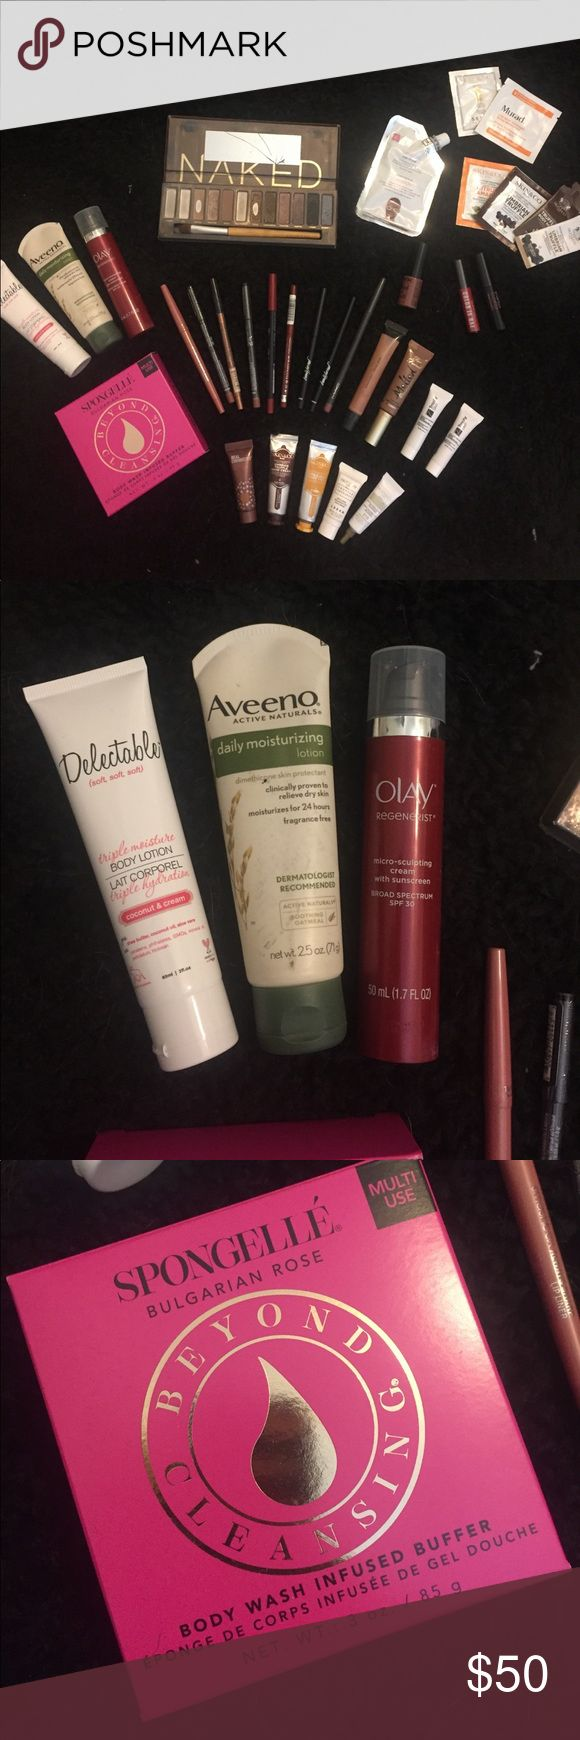 Makeup/ skincare bundle Makeup/ skin care bundle. Brands include:  MAC, SMASHBOX, URBAN DECAY, TOO FACED, OPI, LORAC, SEPHORA, NYX, SKIN & CO. ETC Lip colors, Mascara, eyeshadow, eye liner, etc. skin care, lotions, nail polish/ cuticle oil. ETC.  some products are NEW and some HAVE been used. Selling AS IS. UD naked pallet is missing some shades. Lettering on front of packaging has faded off and mirror is cracked. brushes need to be cleaned. I have NOT cleaned these brushes. They have been…